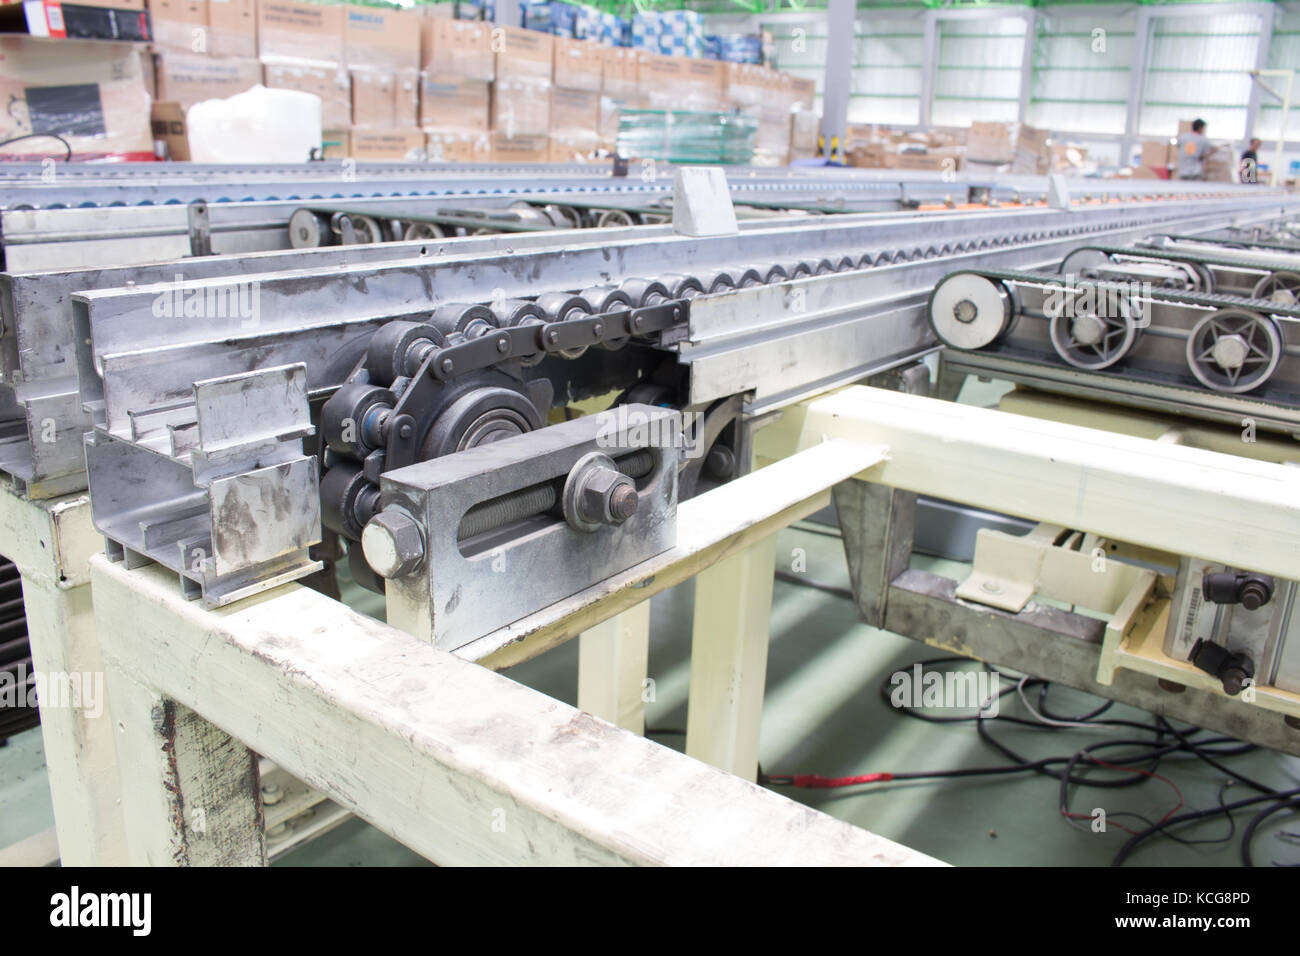 The Equipment chain tensioning Line of Conveyor - Stock Image